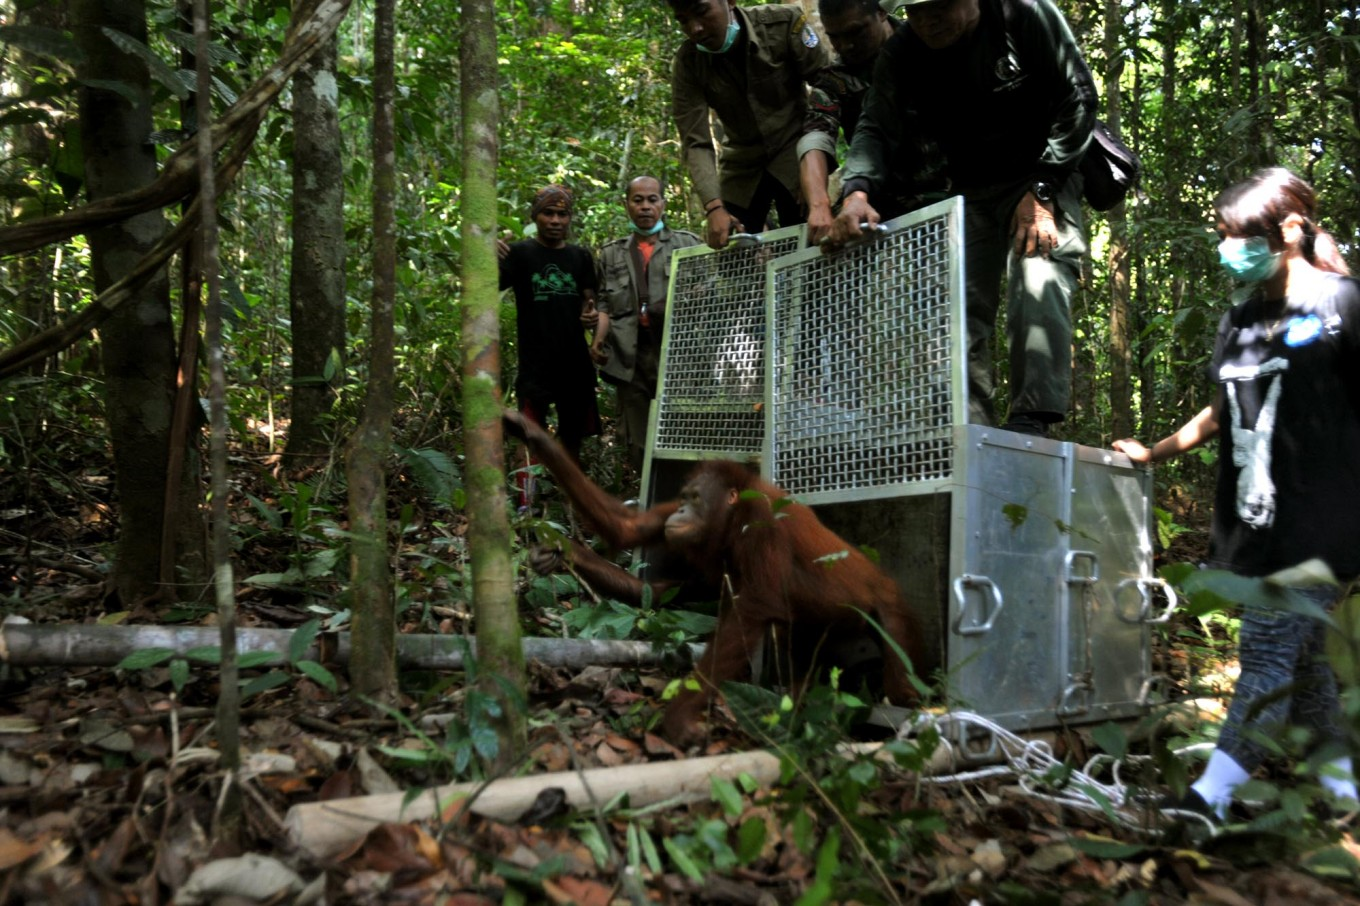 Welcome home: Members of the IAR team open the cage doors and two orangutans begin their first steps back into their natural habitat. JP/Dasril Roszandi